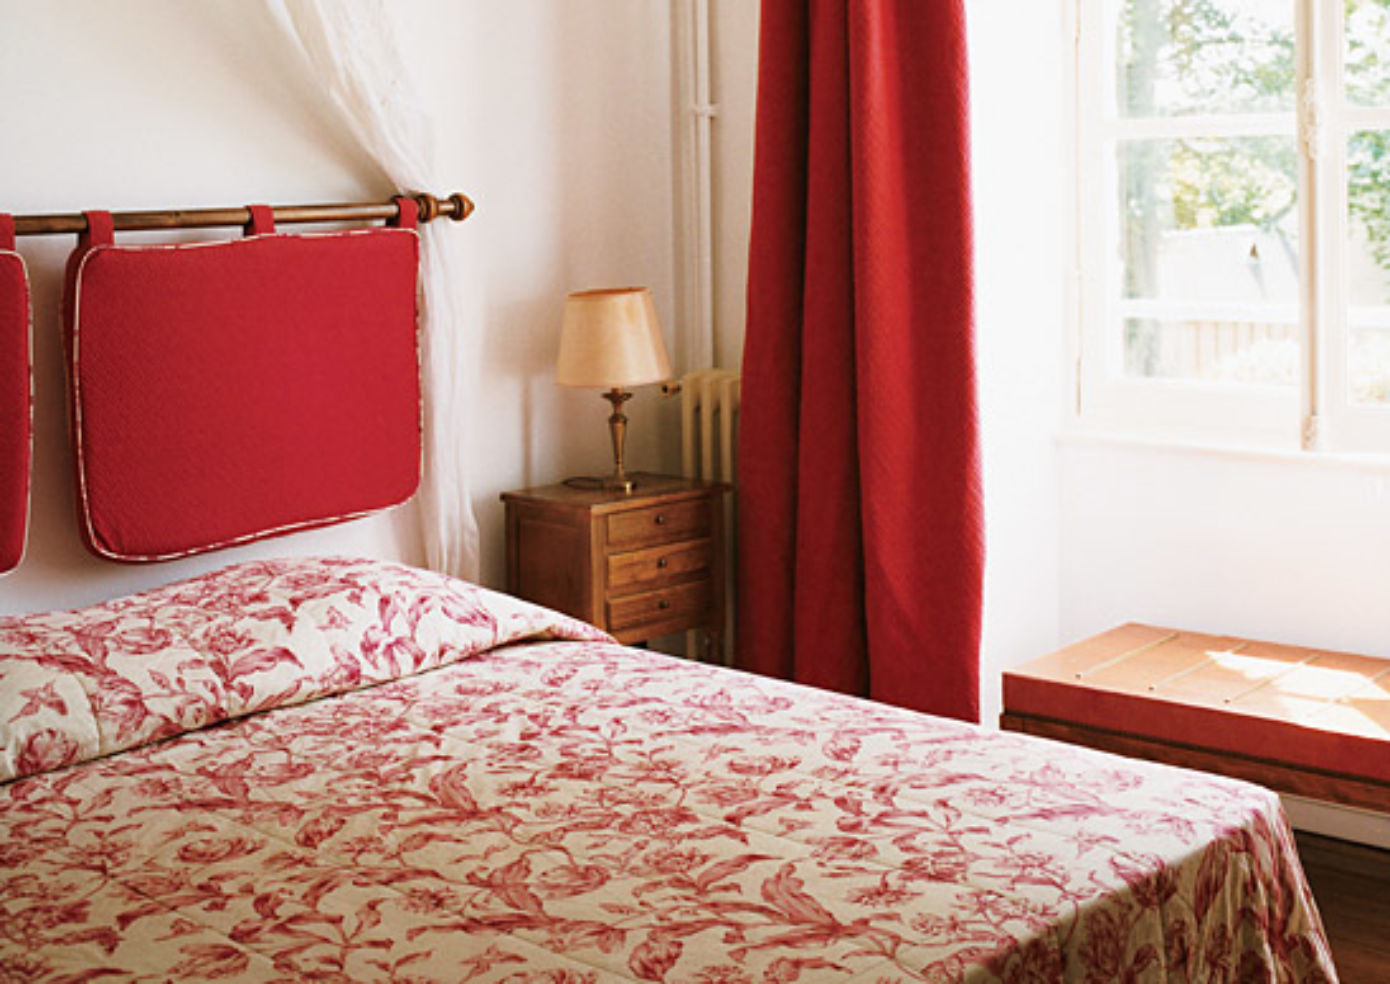 Details like floral fabrics accent the 12 individually designed rooms at Château de l'Isle.